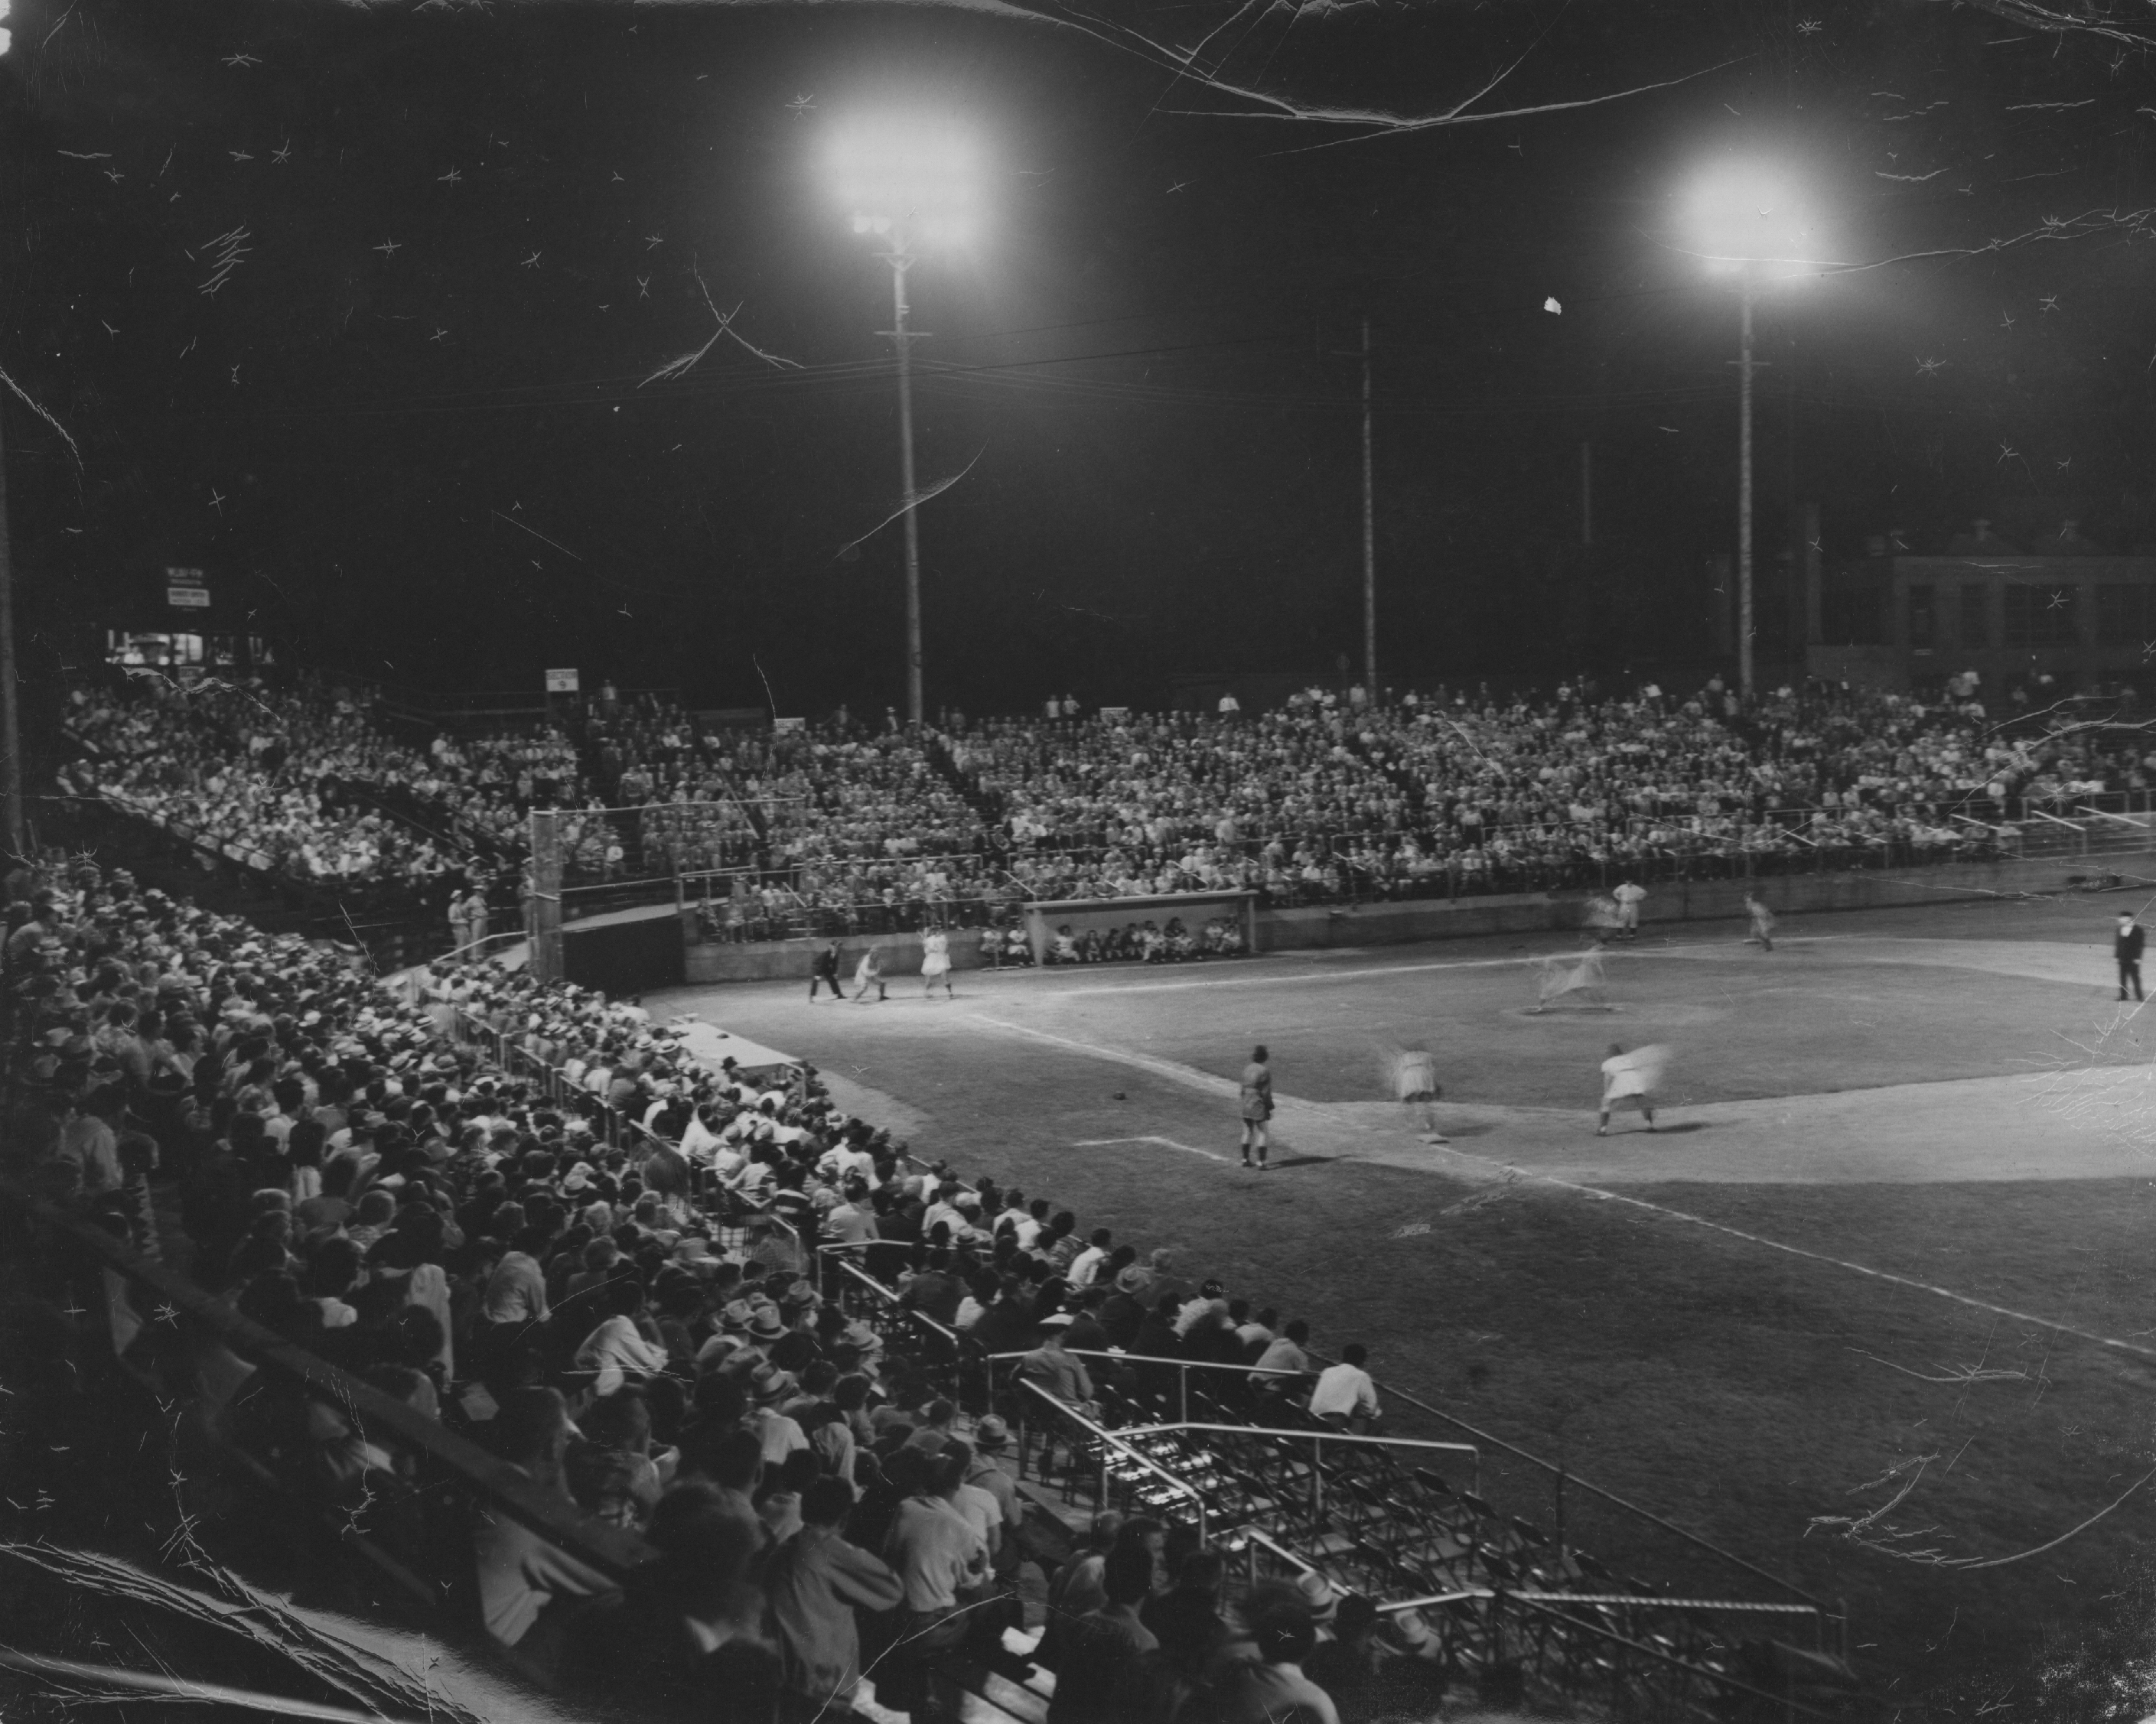 A game under the lights at Smith Field (Courtesy of the History Museum, South Bend)